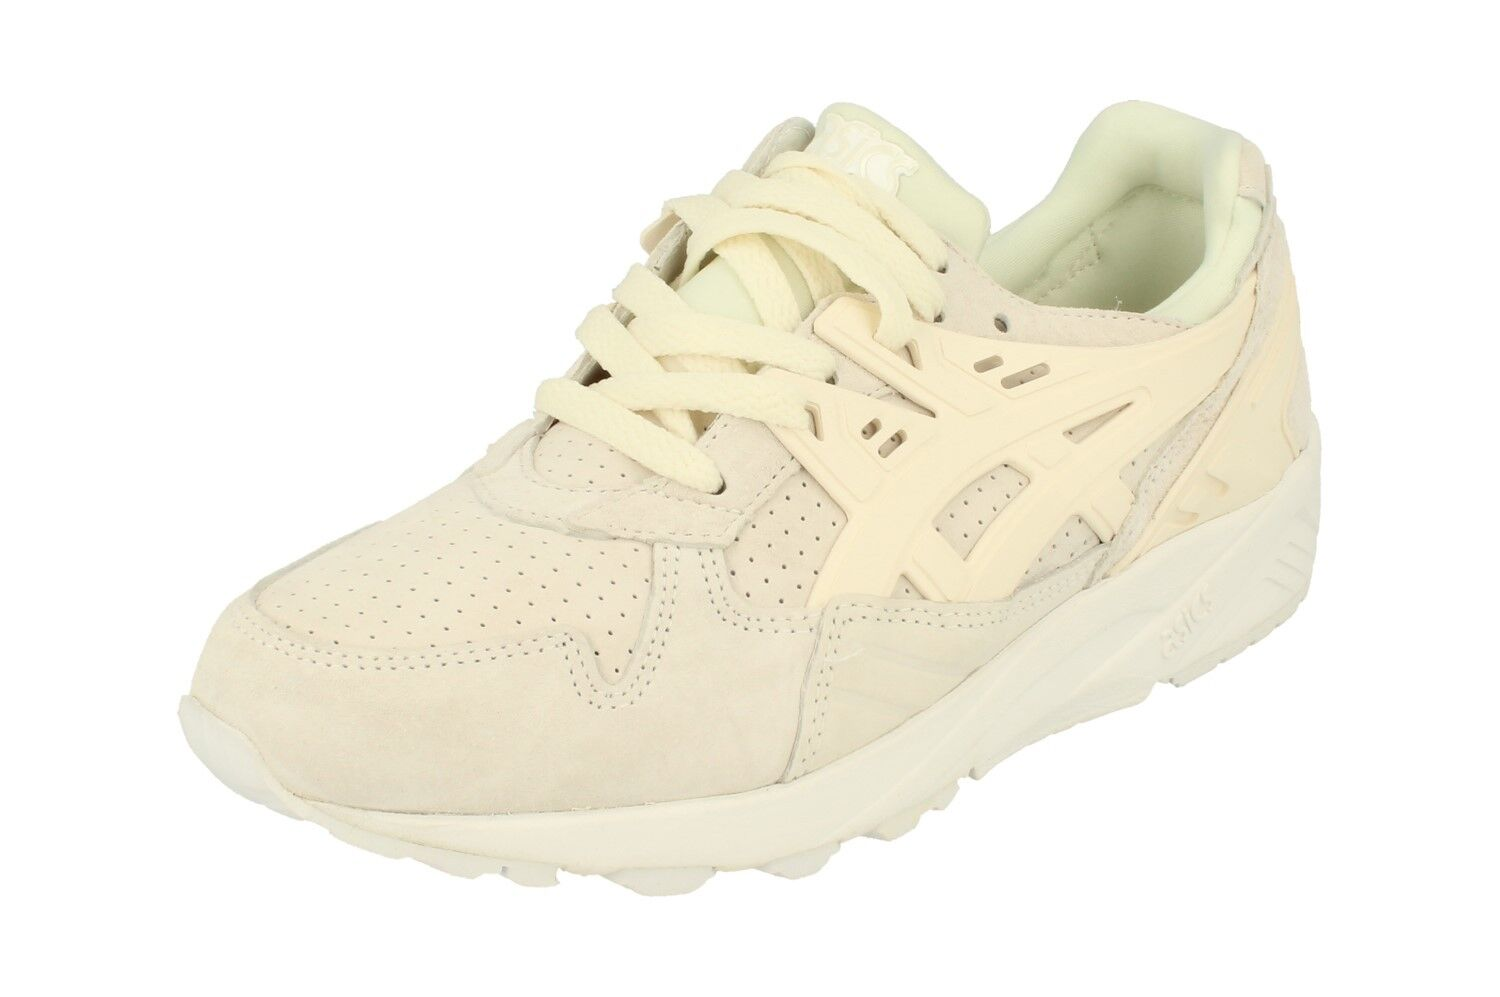 Asics Gel-Kayano Trainer Mens Running Trainers H6M2L Sneakers shoes 9999